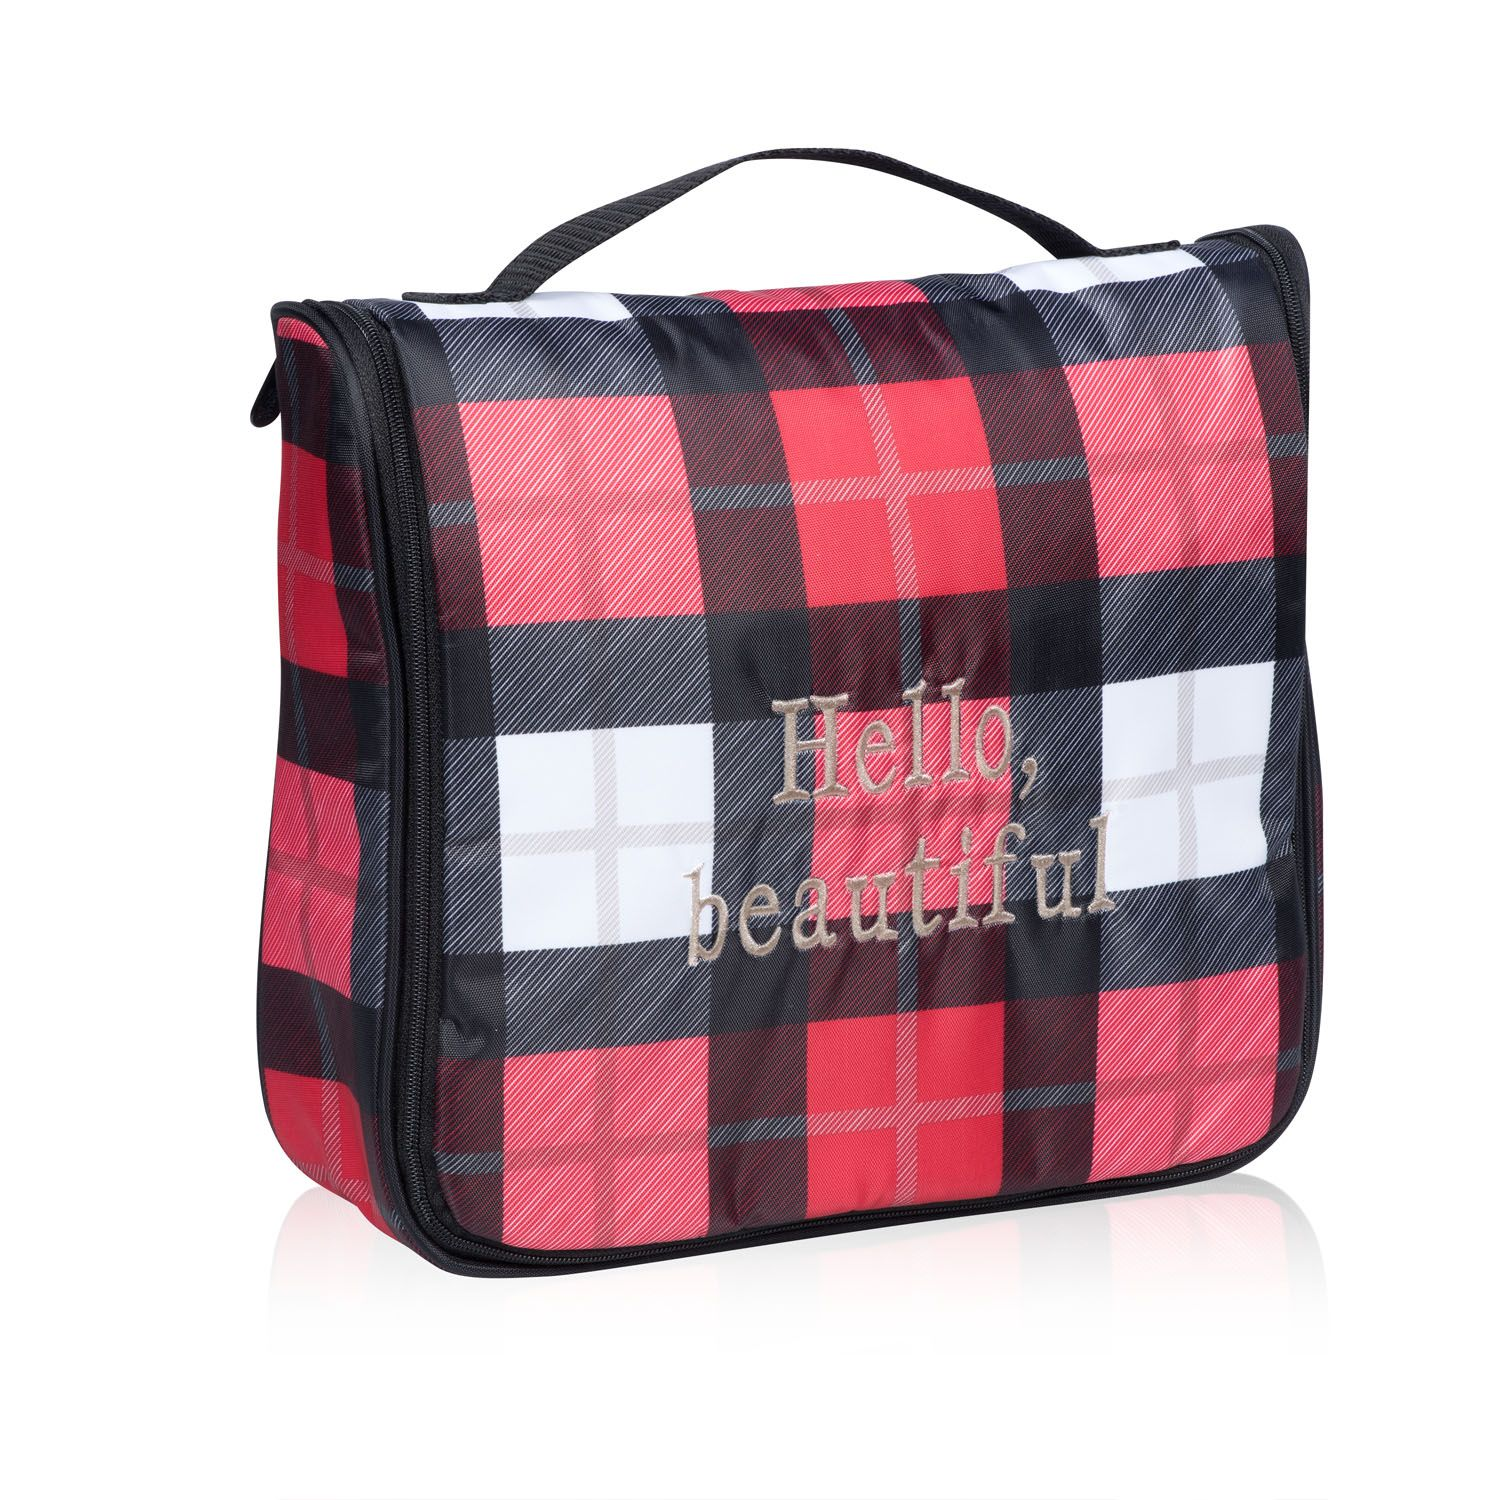 Hanging Traveler Case In Check Mate For Take Your Pampering - Travel bag for bathroom items for bathroom decor ideas